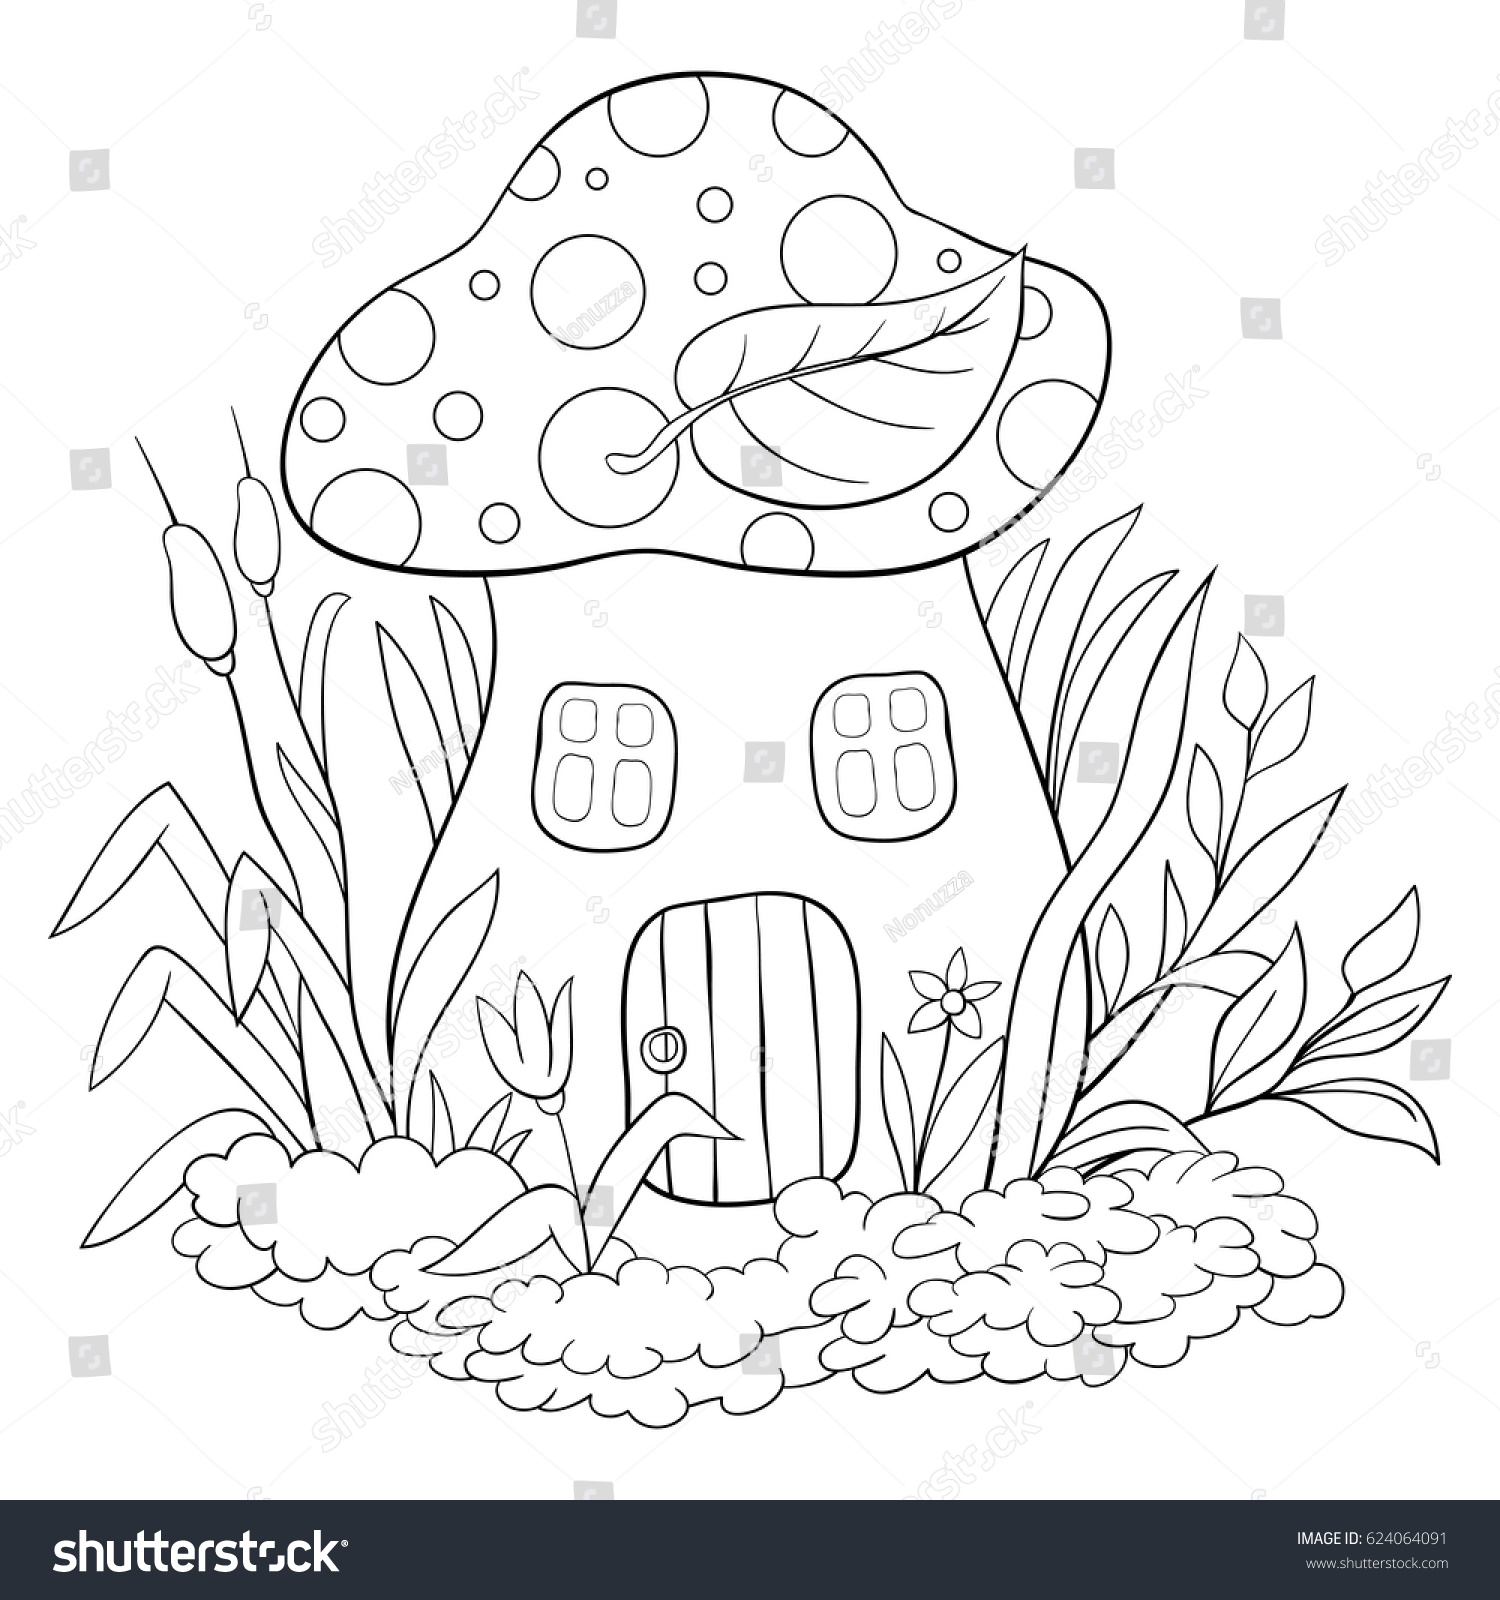 Children coloring page a mushroom house cartoon style illustration